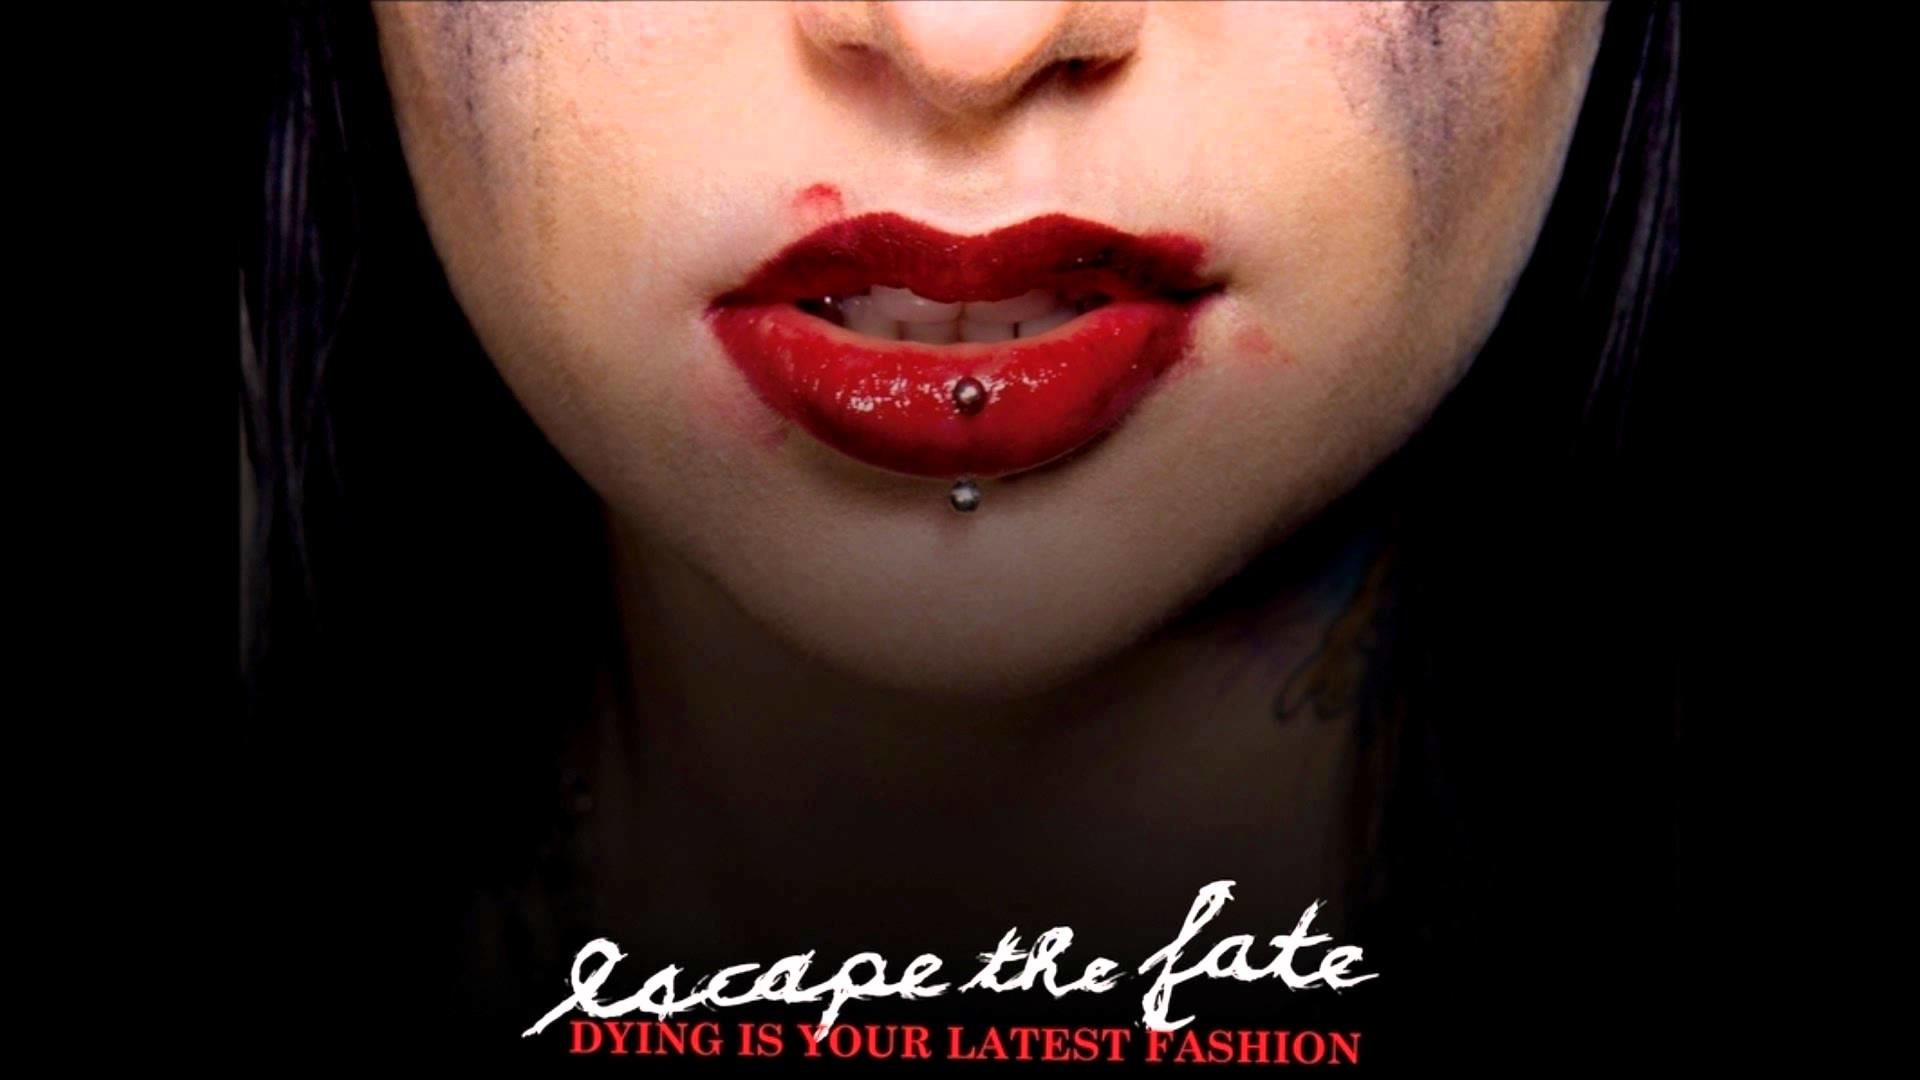 Escape the fate dying is your latest fashion songs list